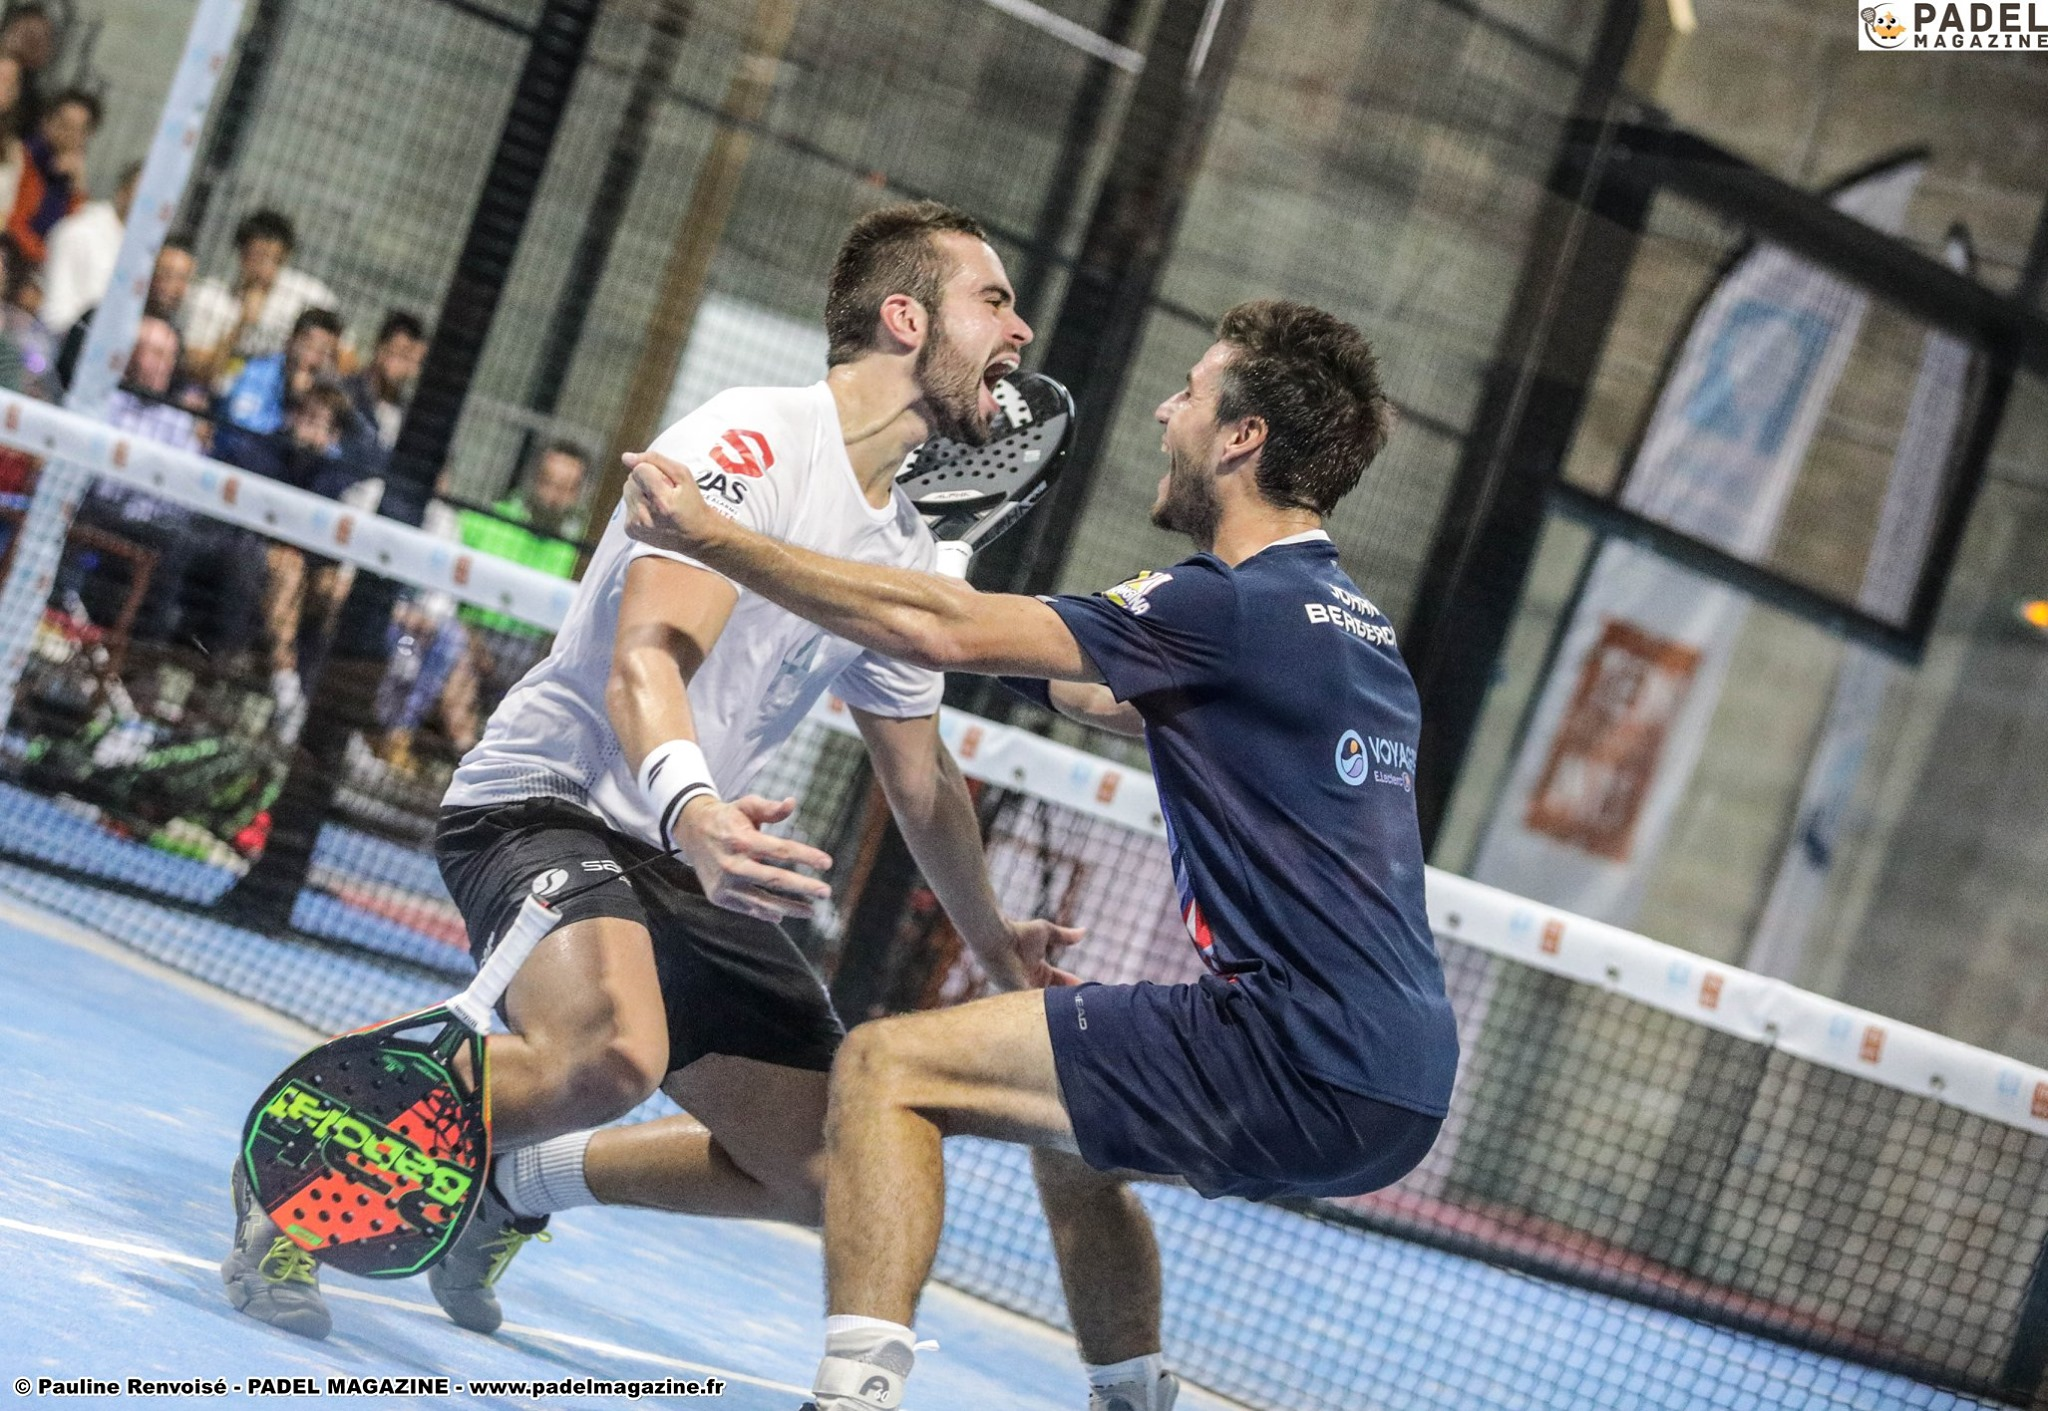 French Championship 2019: Blanqué / Bergeron for history!